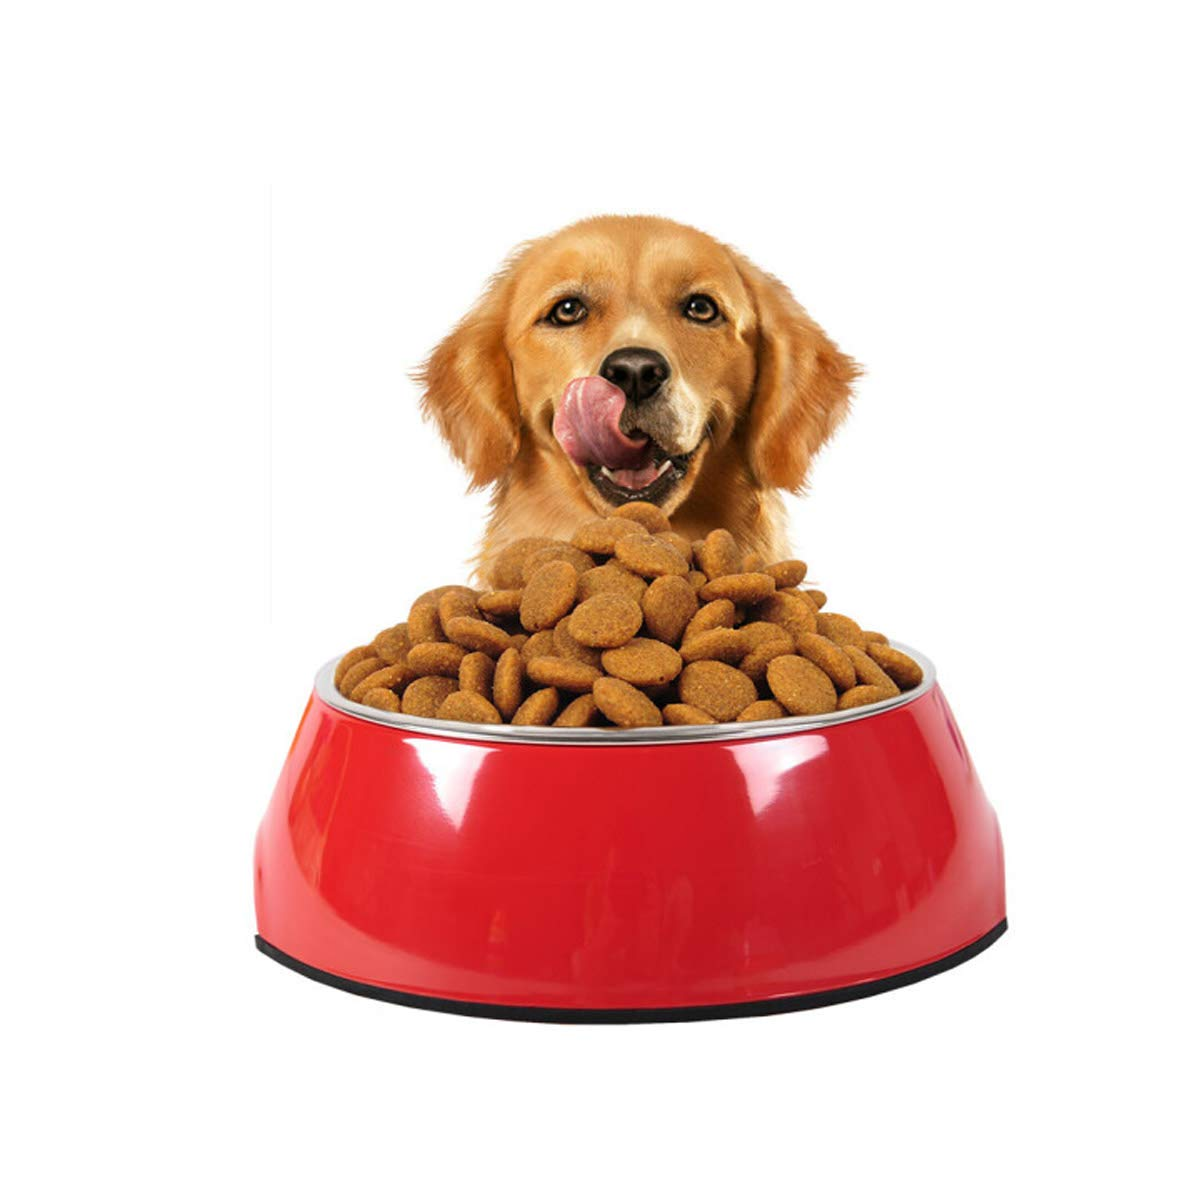 Red M Red M Guyuexuan Cat Bowl, Cat Food Bowl, Dog Food Bowl, Pet Supplies, Ceramic Bowl, Cat Feeder, Dog Food Bowl, Best Gift (color   Red, Size   M)